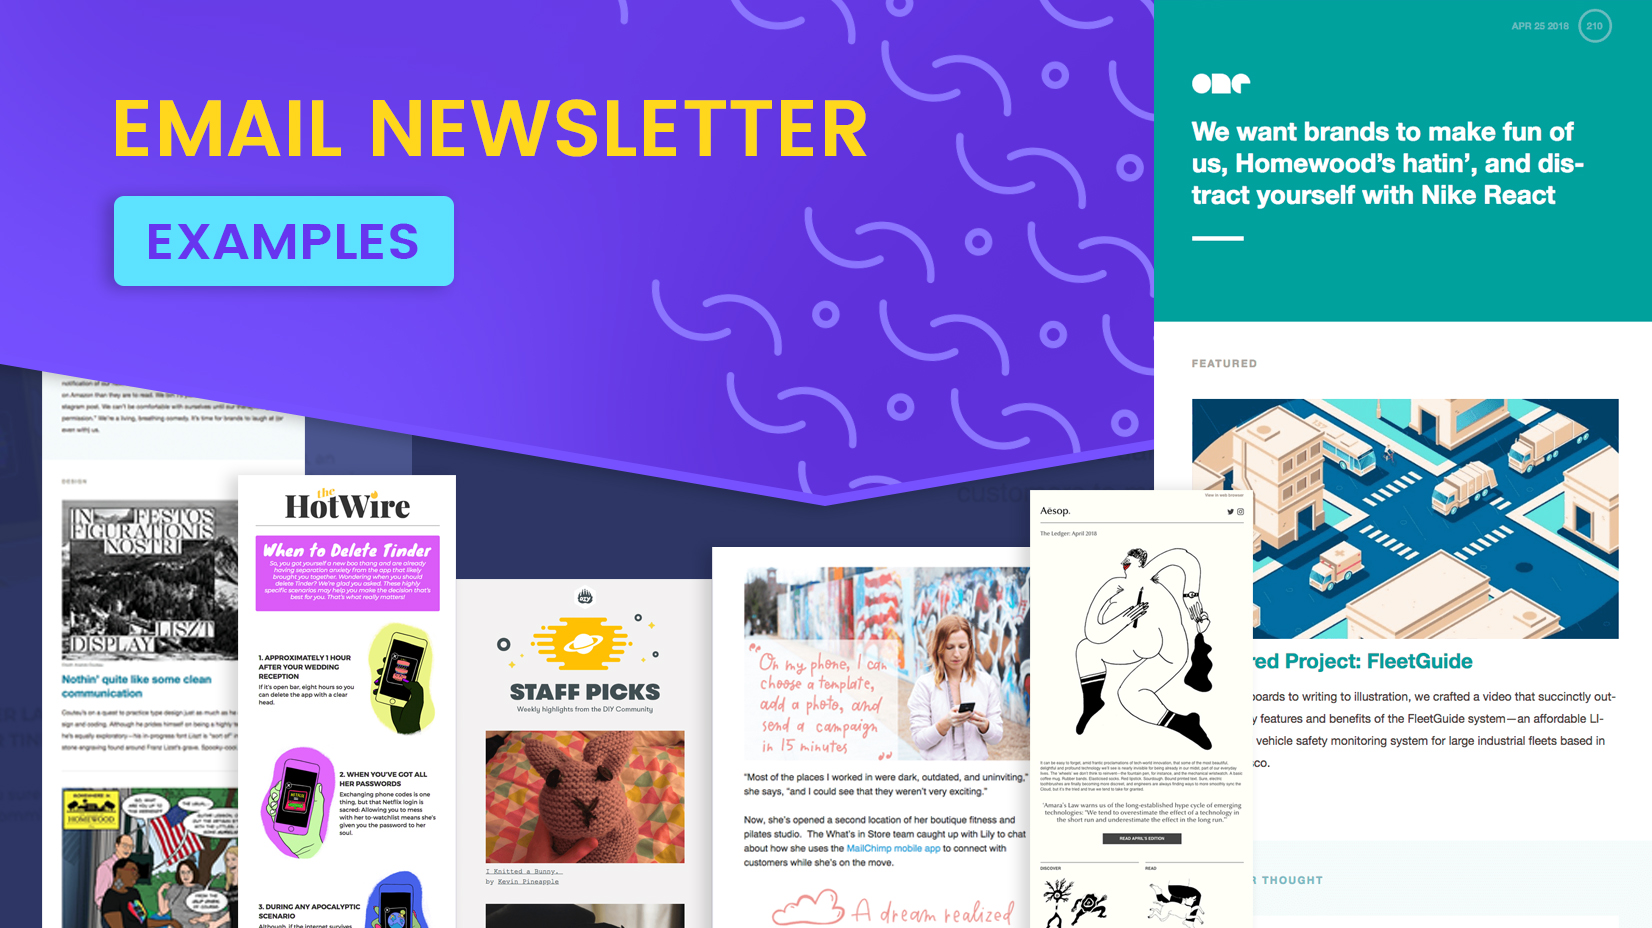 email newsletter examples  10 brands that enchant the inbox